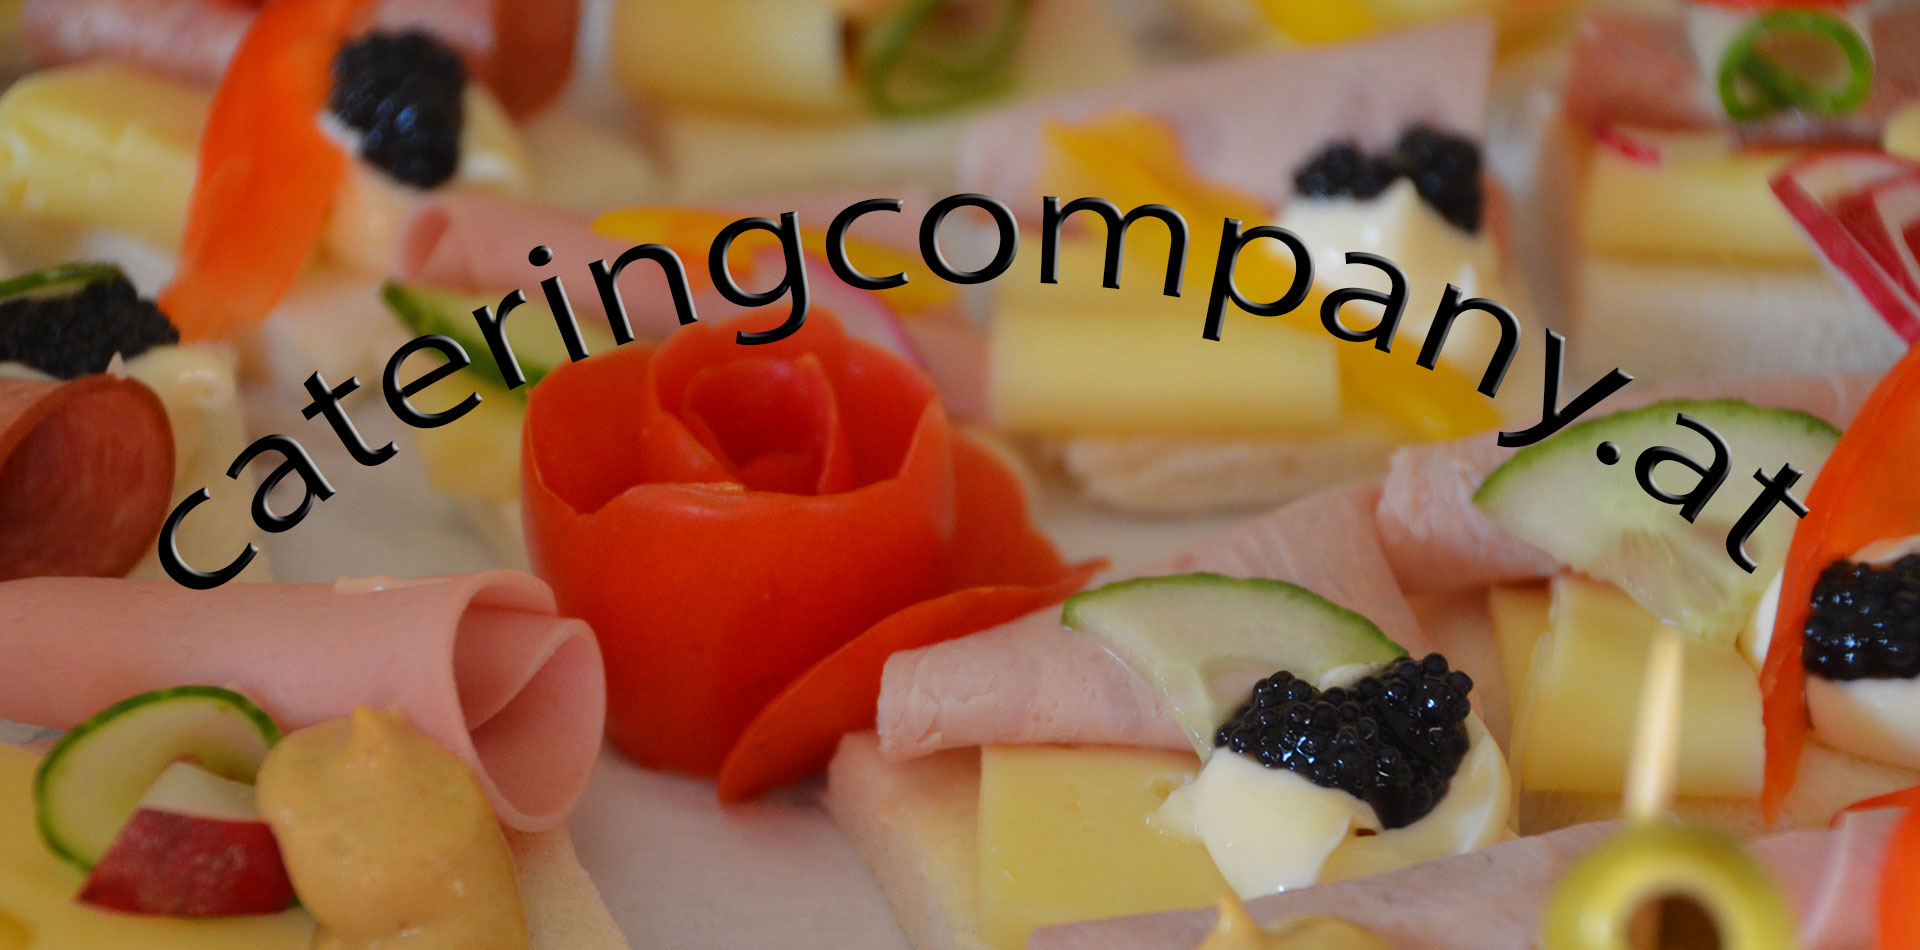 Cateringcompany